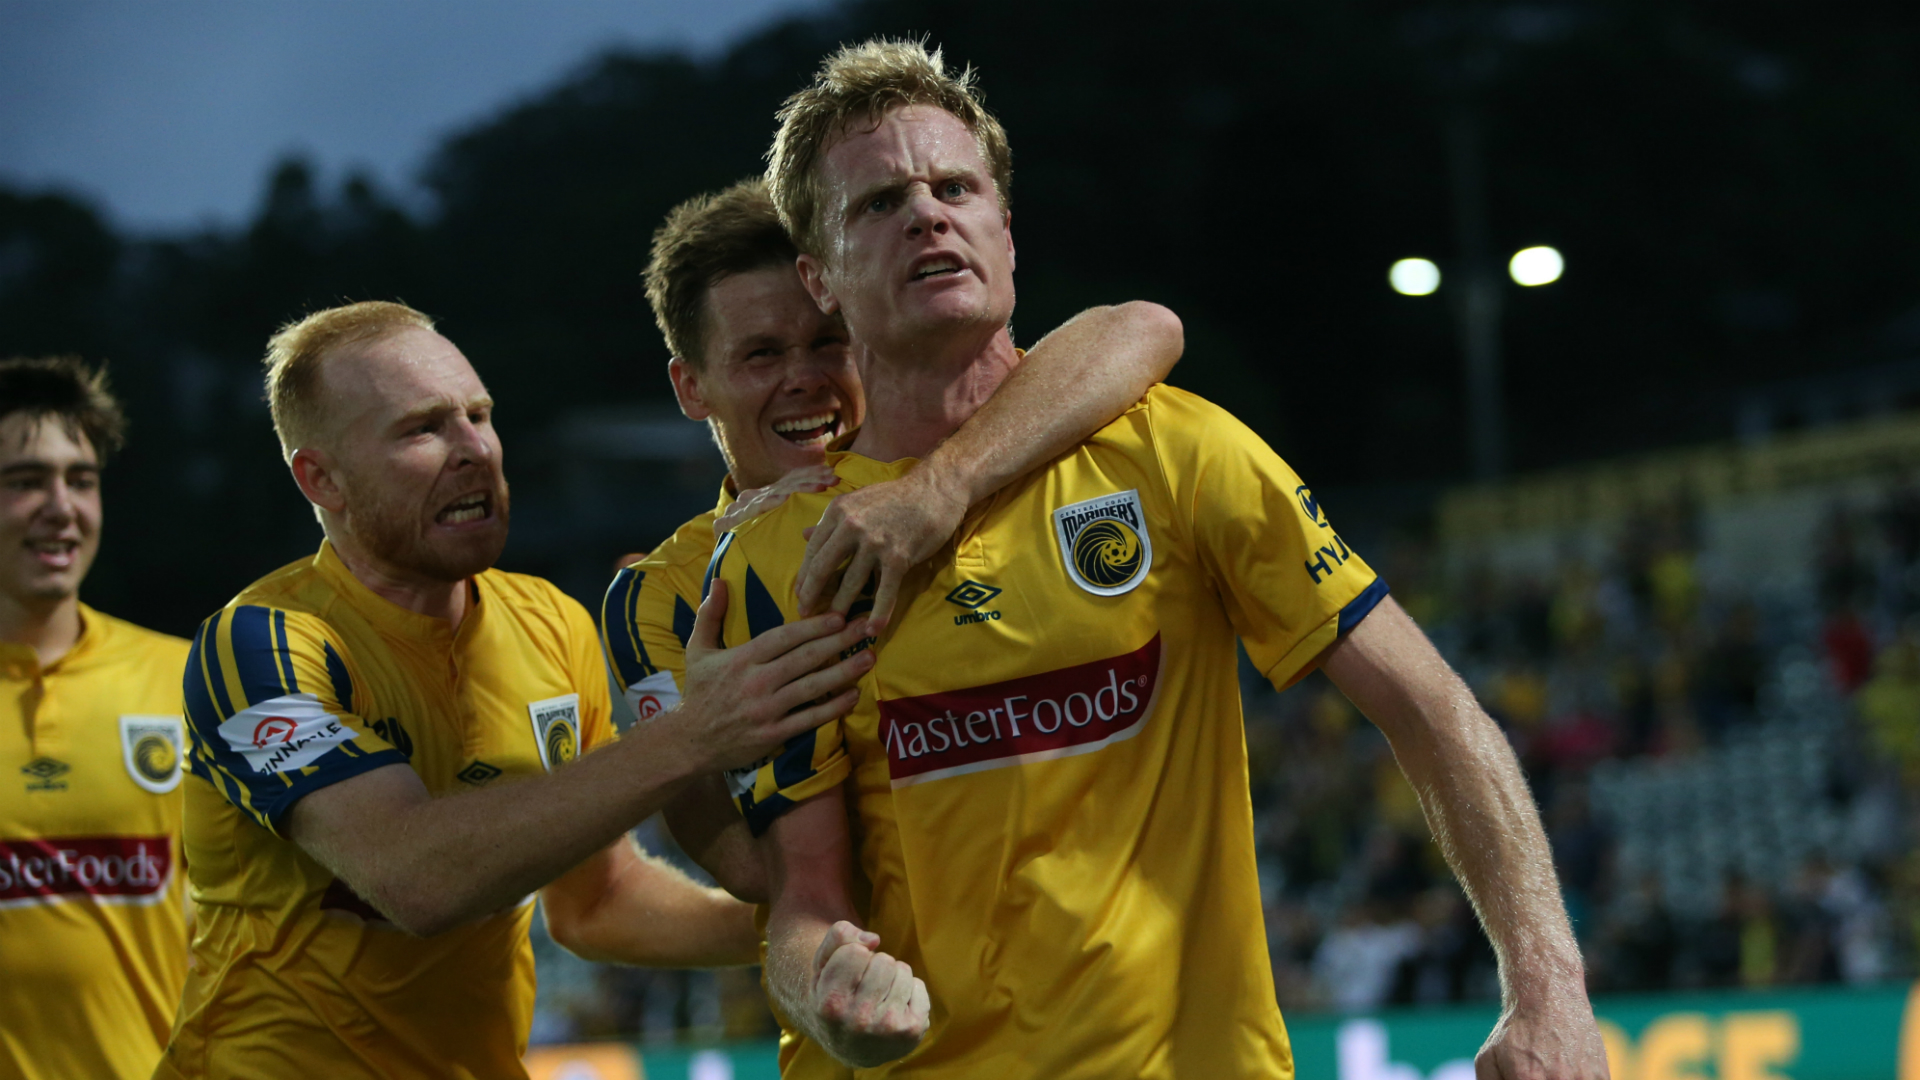 Central Coast Mariners 3-2 Melbourne Victory: Simon hits 100th-minute winner after double spot-kick drama